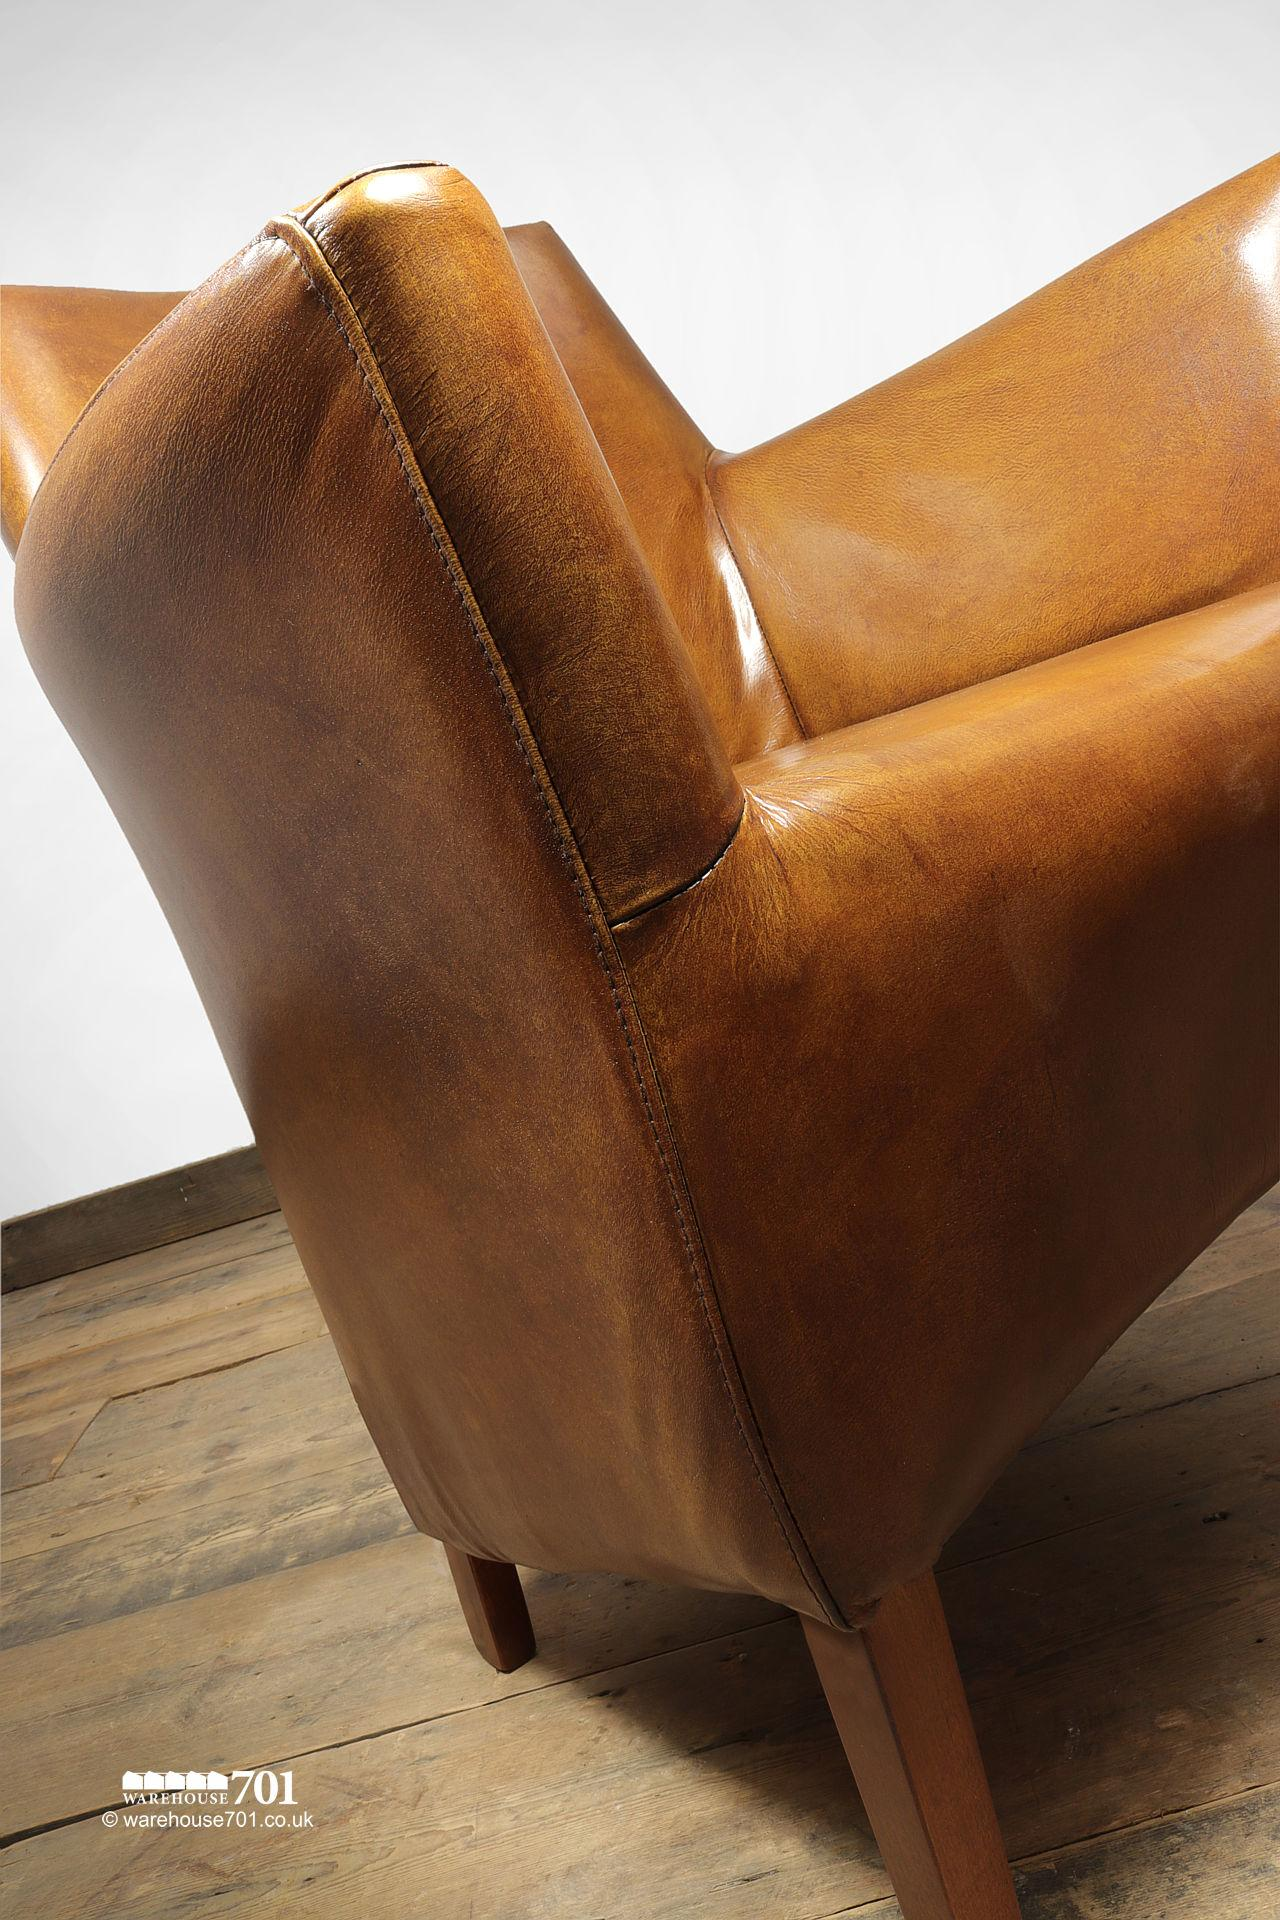 NEW Stylish and Sumptuous Compact Stitched Leather Armchair #2